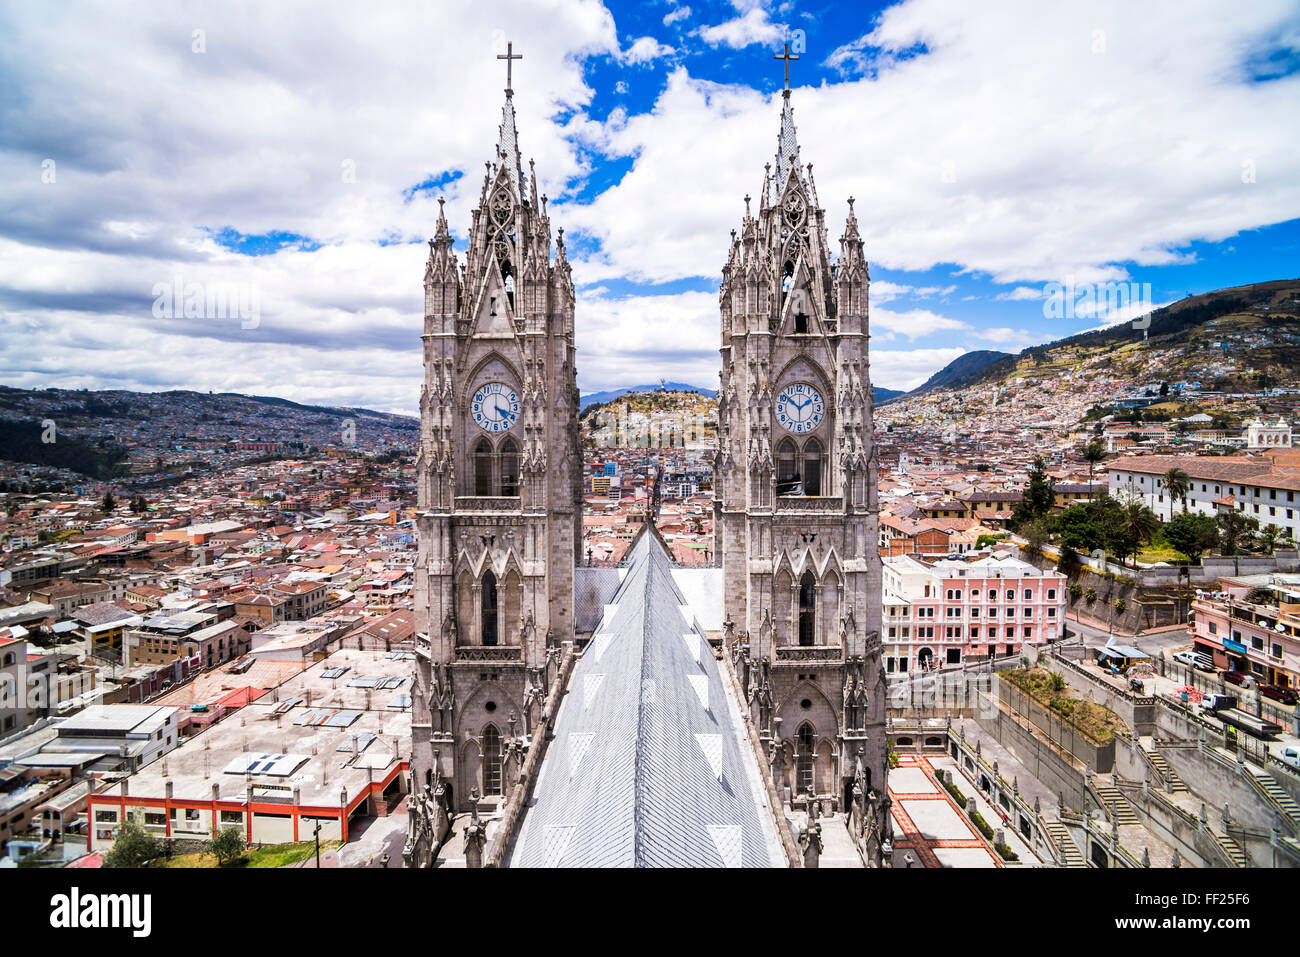 Quito ORMd Town seen from the roof of RMa BasiRMica Church, UNESCO WorRMd Heritage Site, Quito, Ecuador, South America - Stock Image